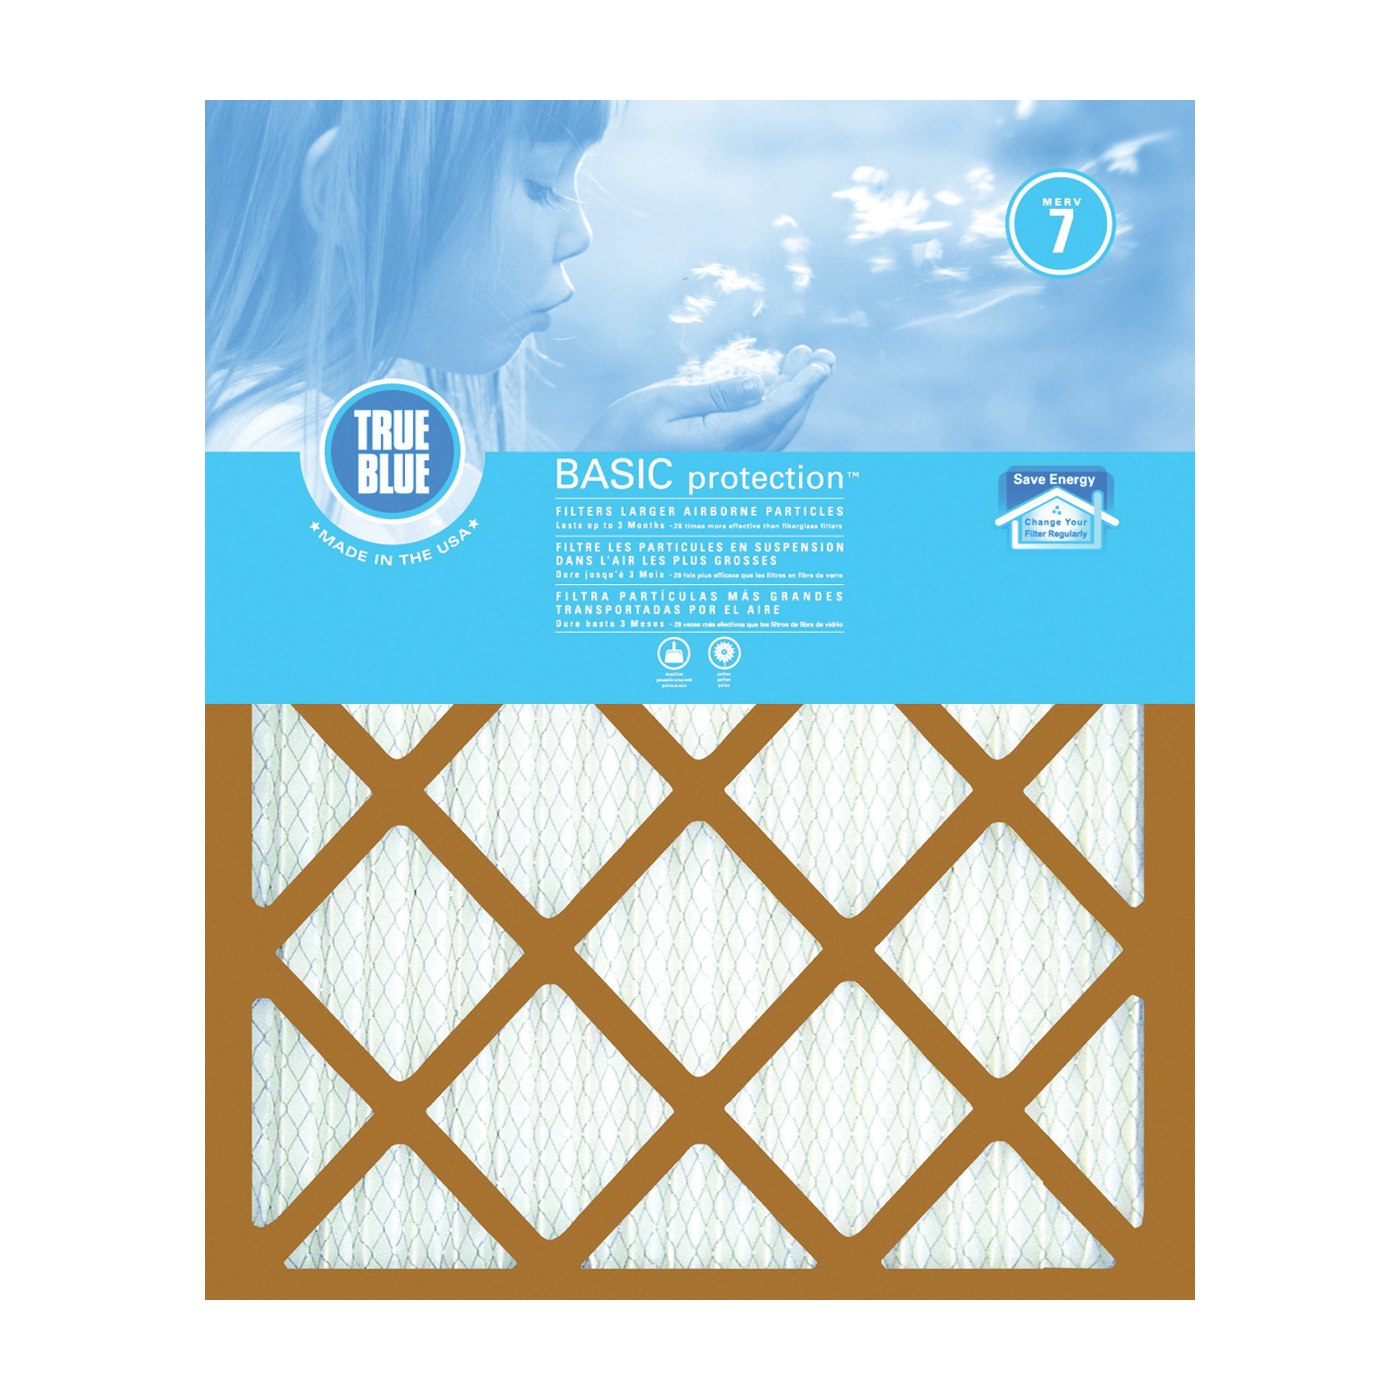 Picture of True Blue 214201 Air Filter, 20 in L, 14 in W, 7 MERV, 53.7 % Filter Efficiency, Synthetic Pleated Filter Media